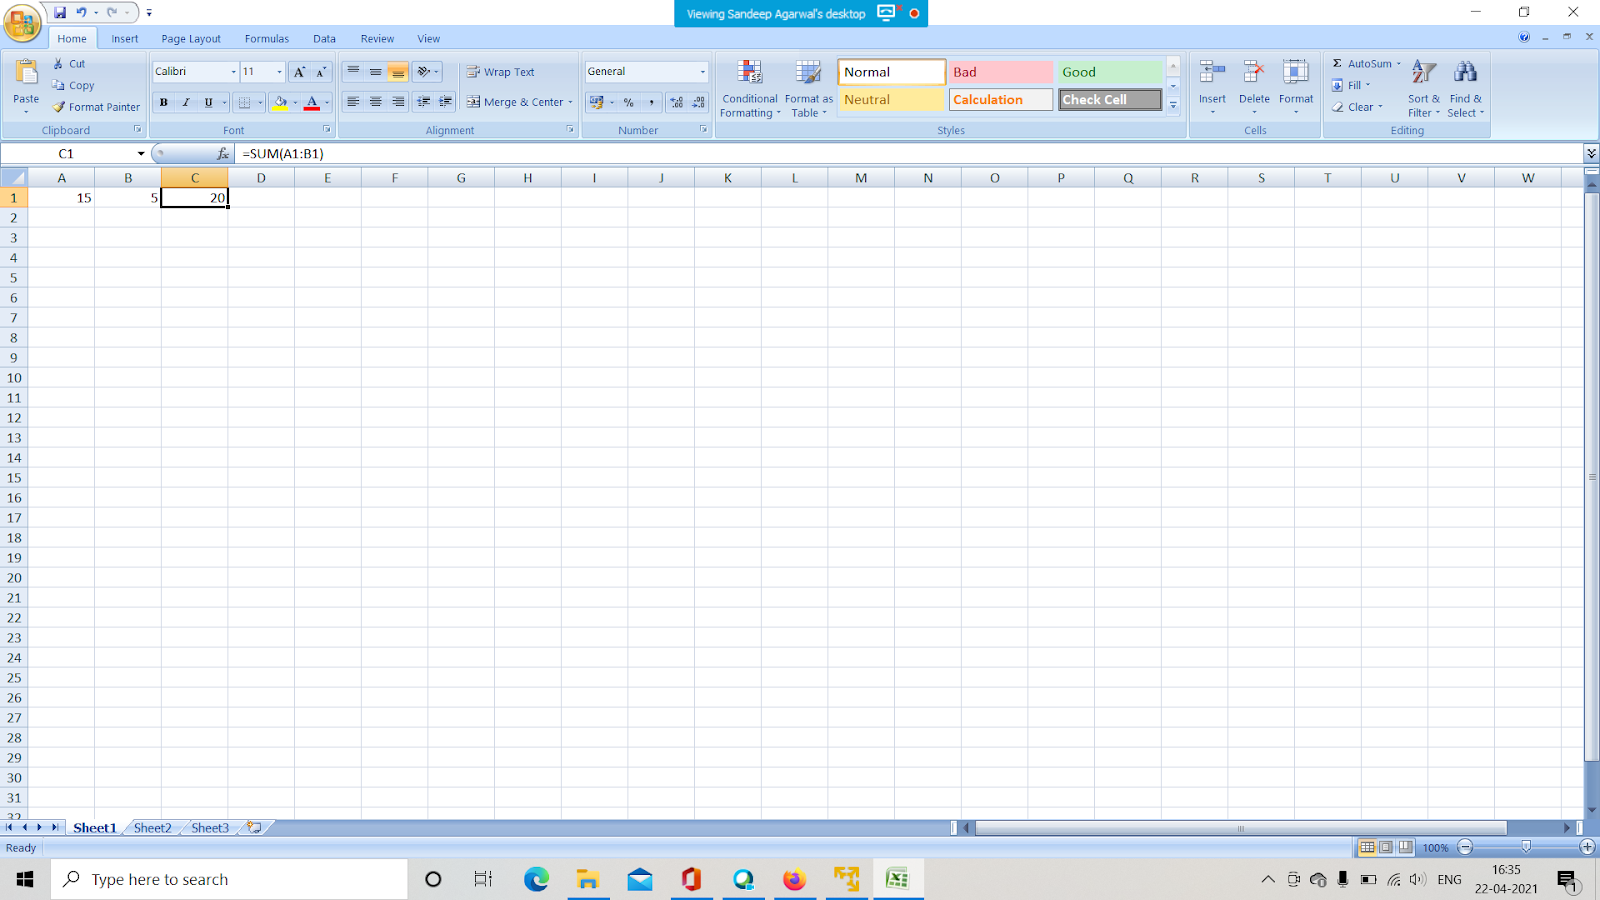 HOW TO ADD TWO NUMBERS IN EXCEL USING FORMULA